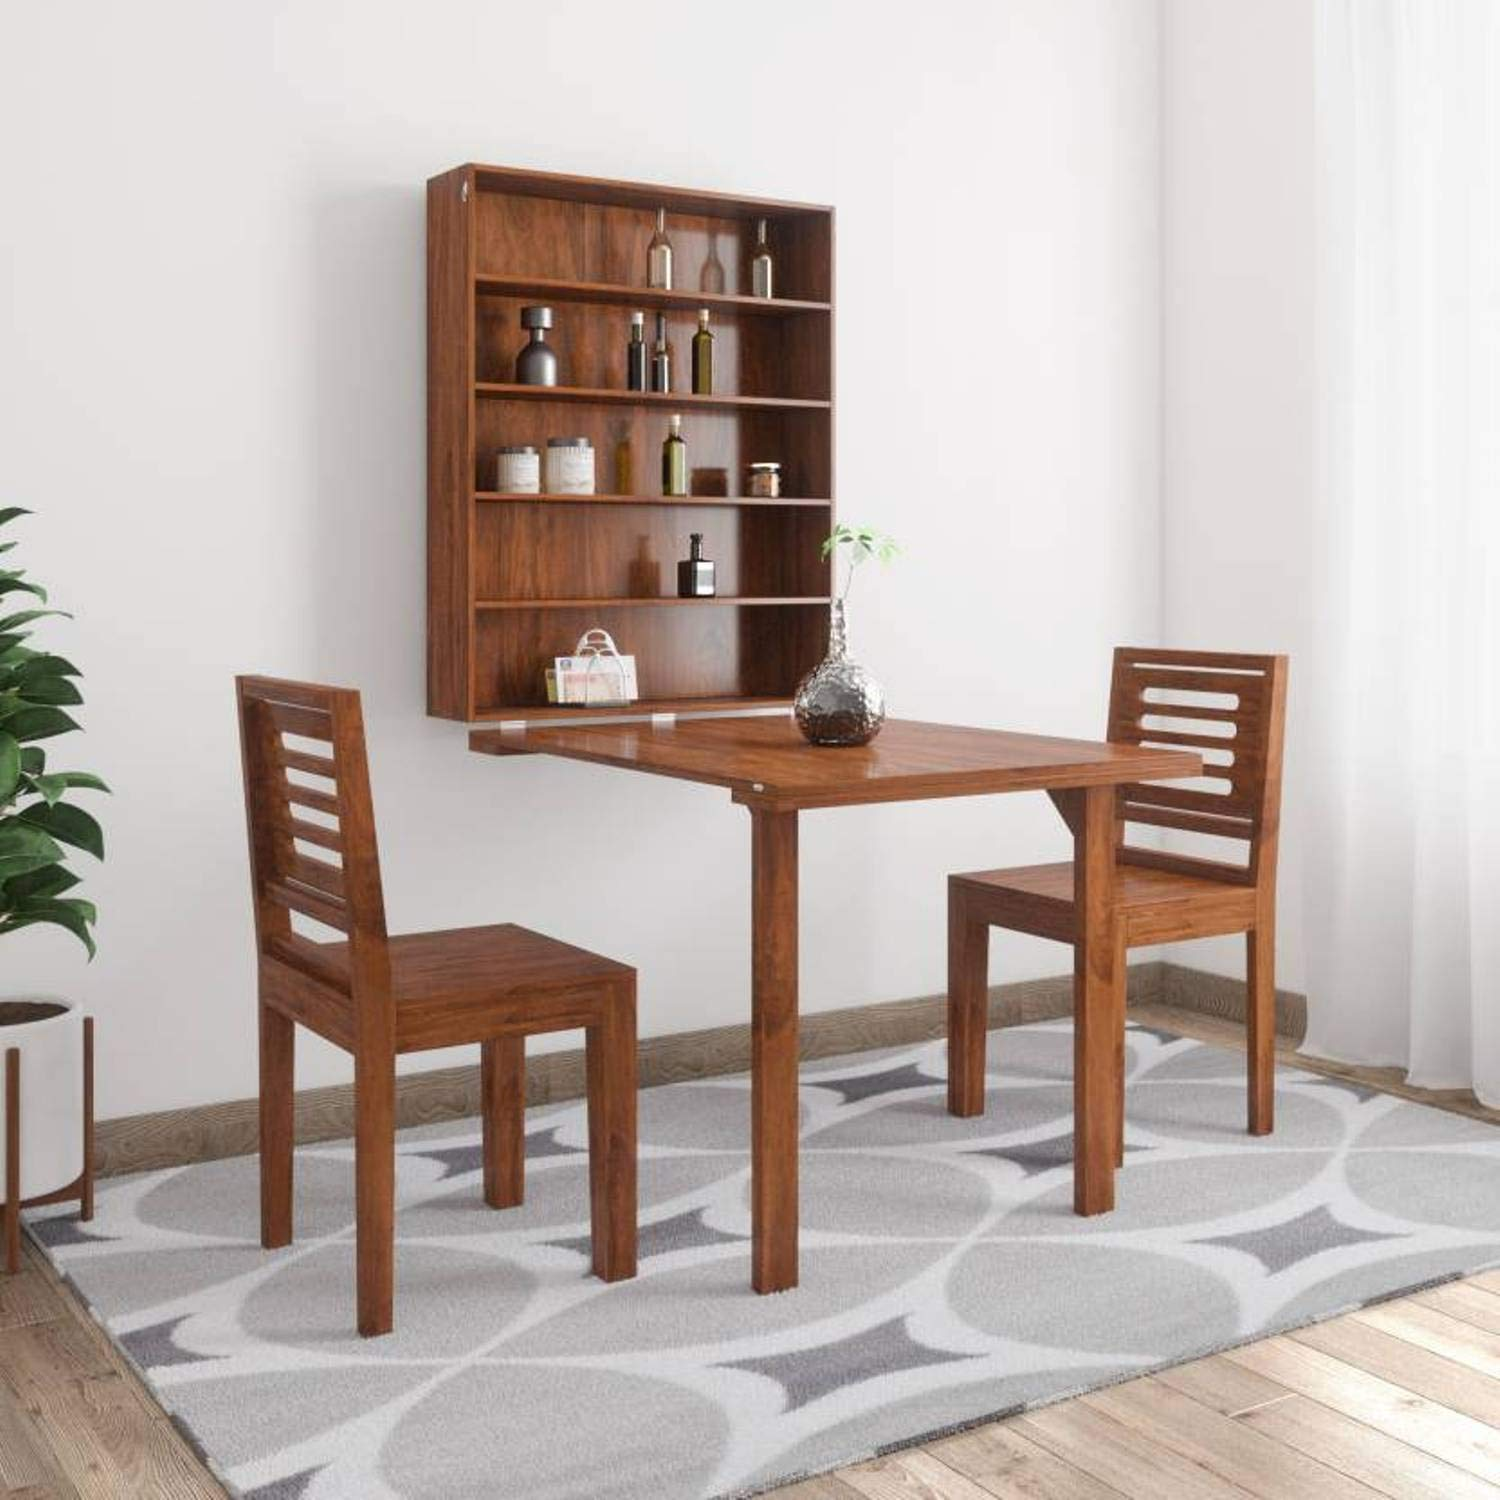 - Craftatoz Sheesham Wood Folding Dining Table With 2 Chairs For